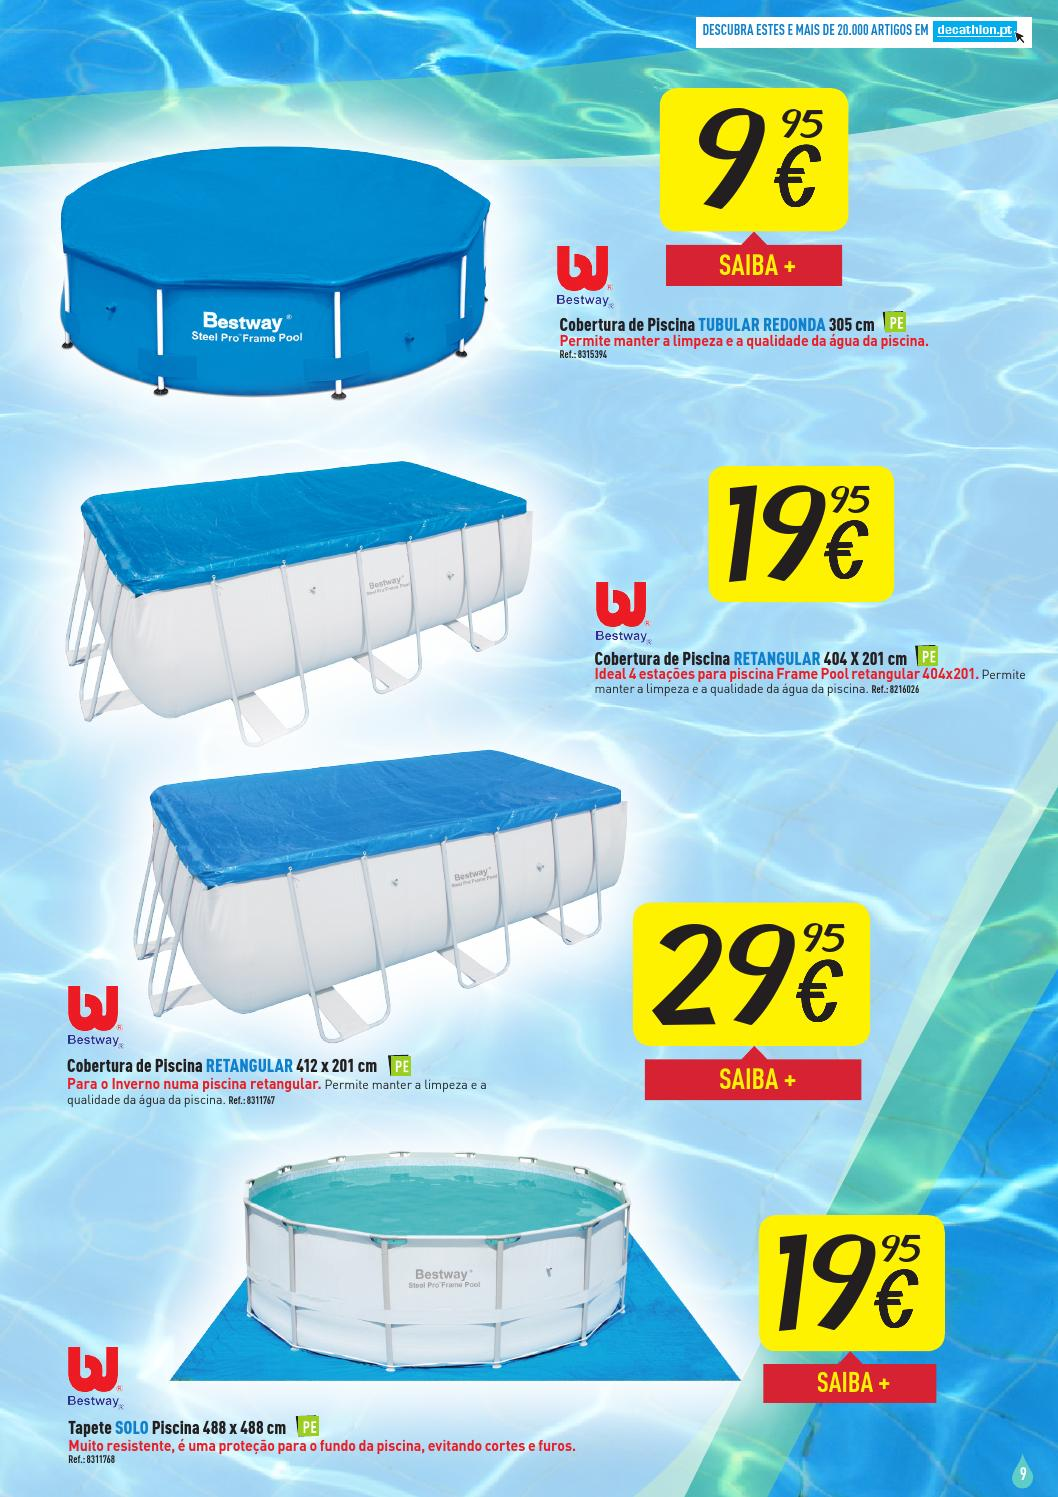 Oferta de piscinas decathlon ver o 2014 by decathlon for Oferta de piscina